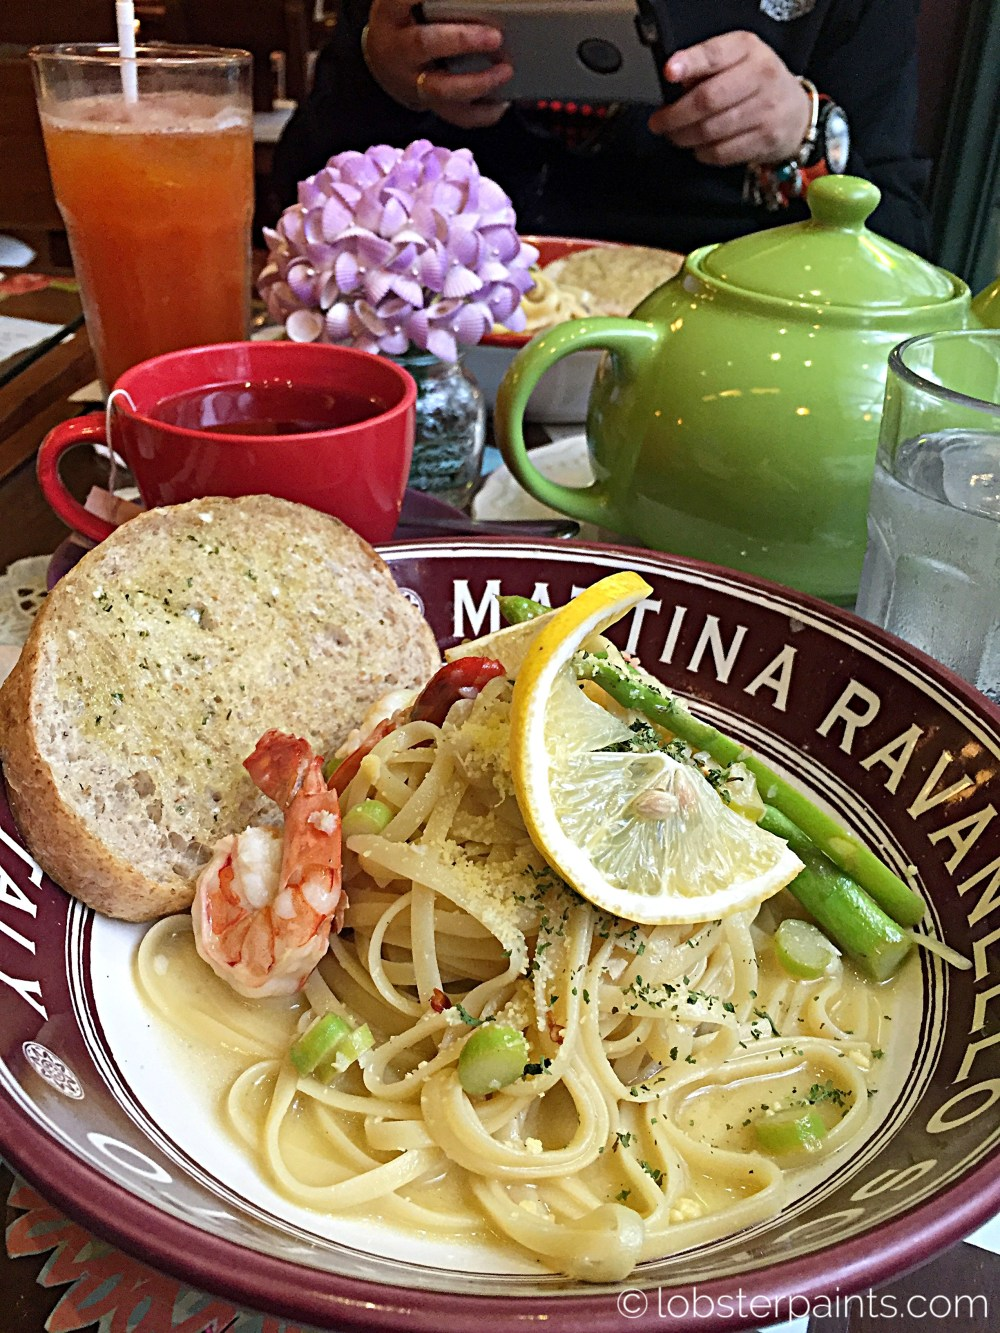 17 October 2015: Mary Grace Cafe @ Serendra | Taguig City, Metro Manila, Philippines